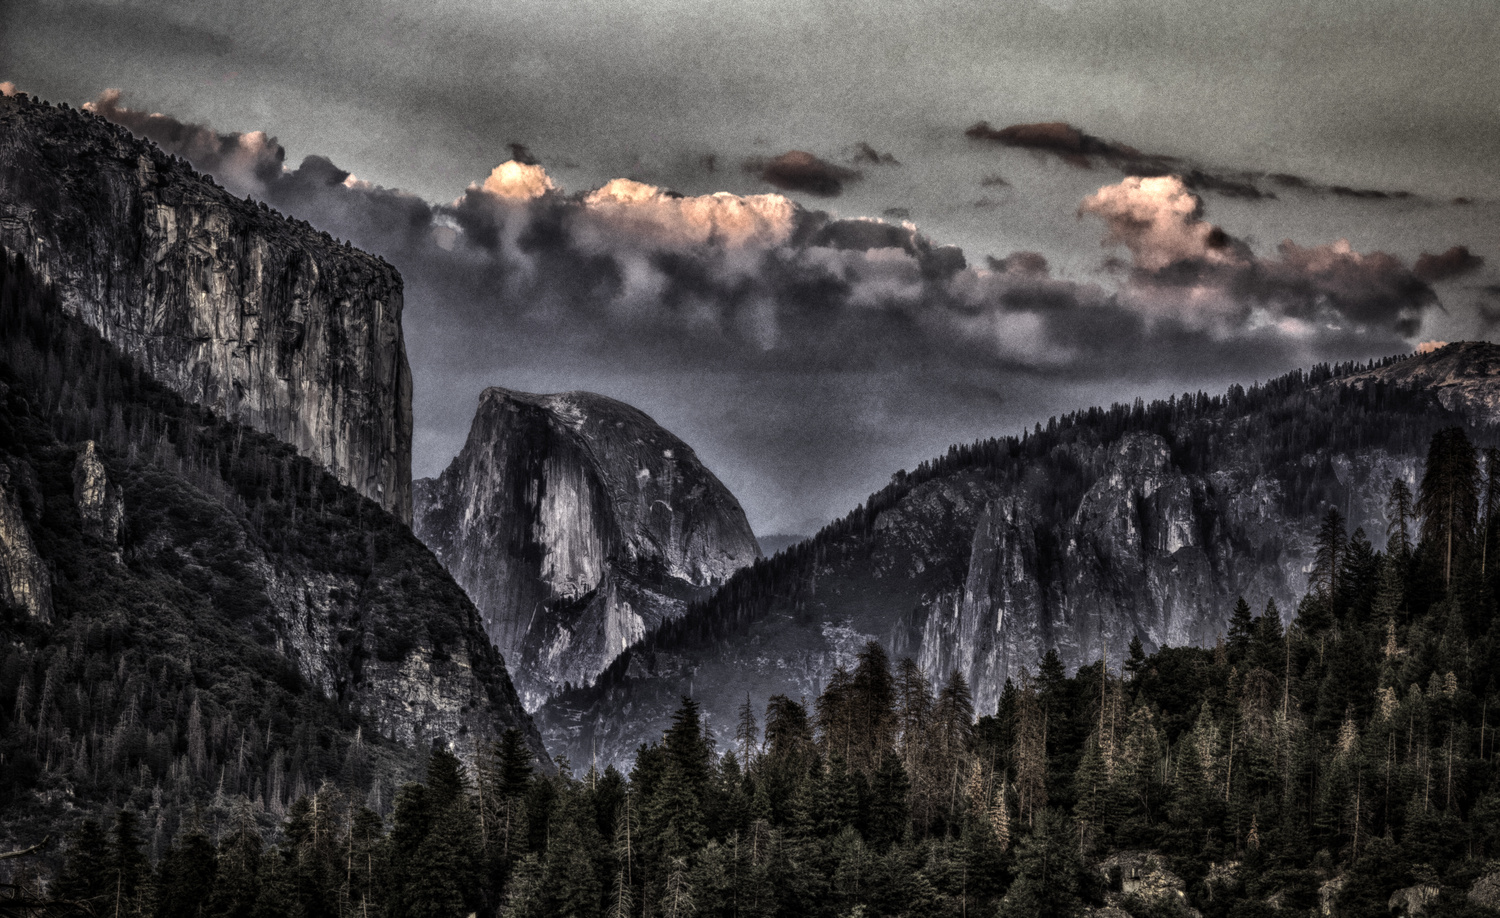 Yosemite From a Distance by Zach Deets